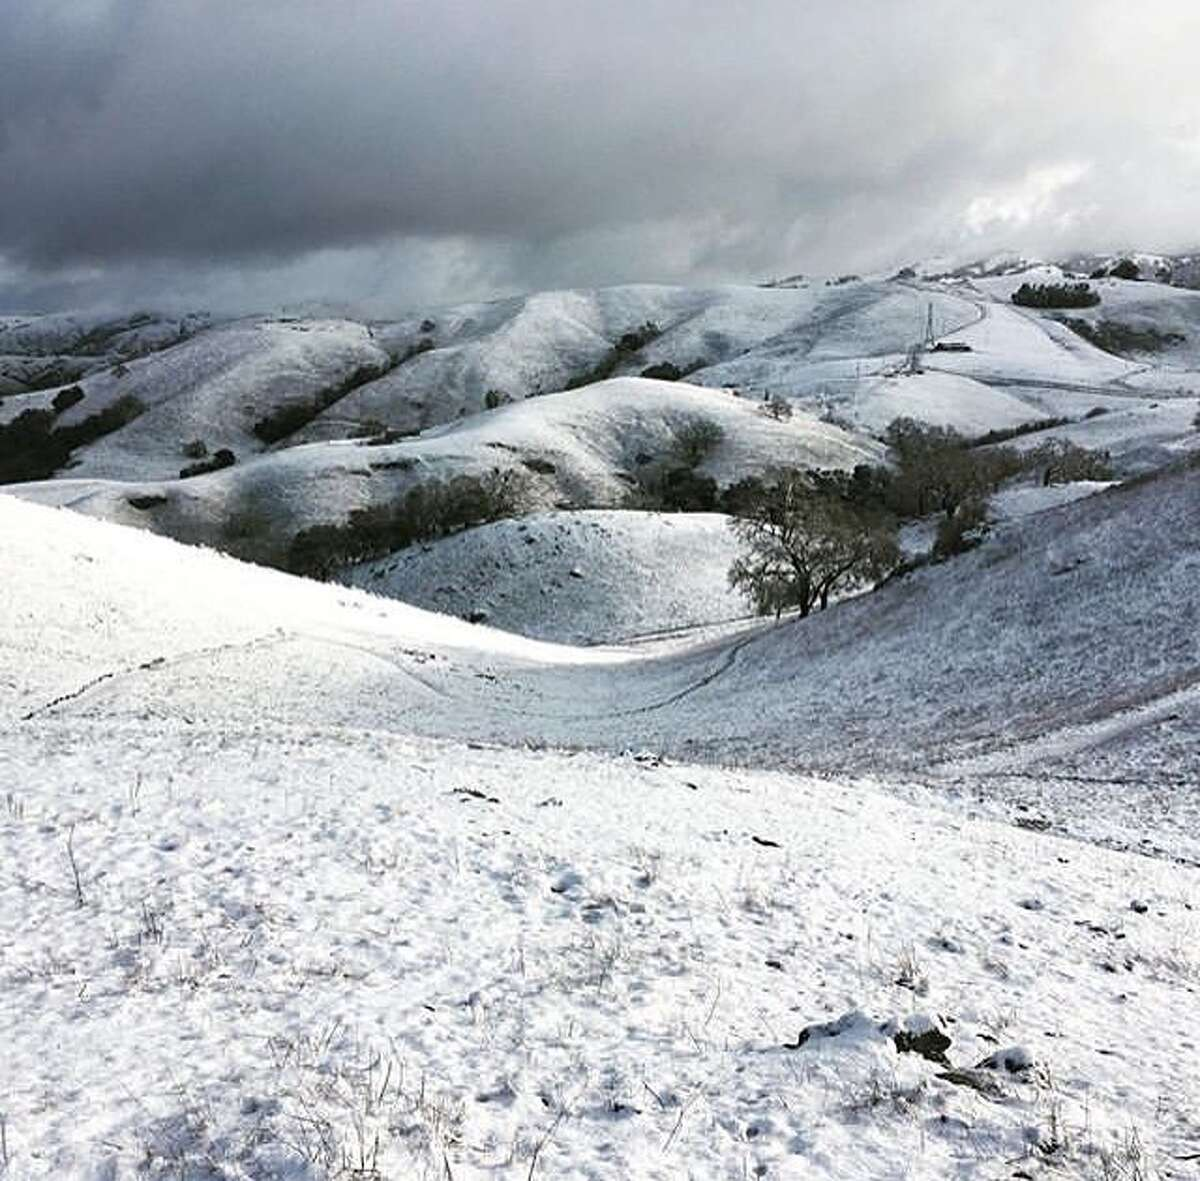 @lee.panich treked out to the Sierra Vista Open Space Preserve to photograph the unusual snowfall in early February.